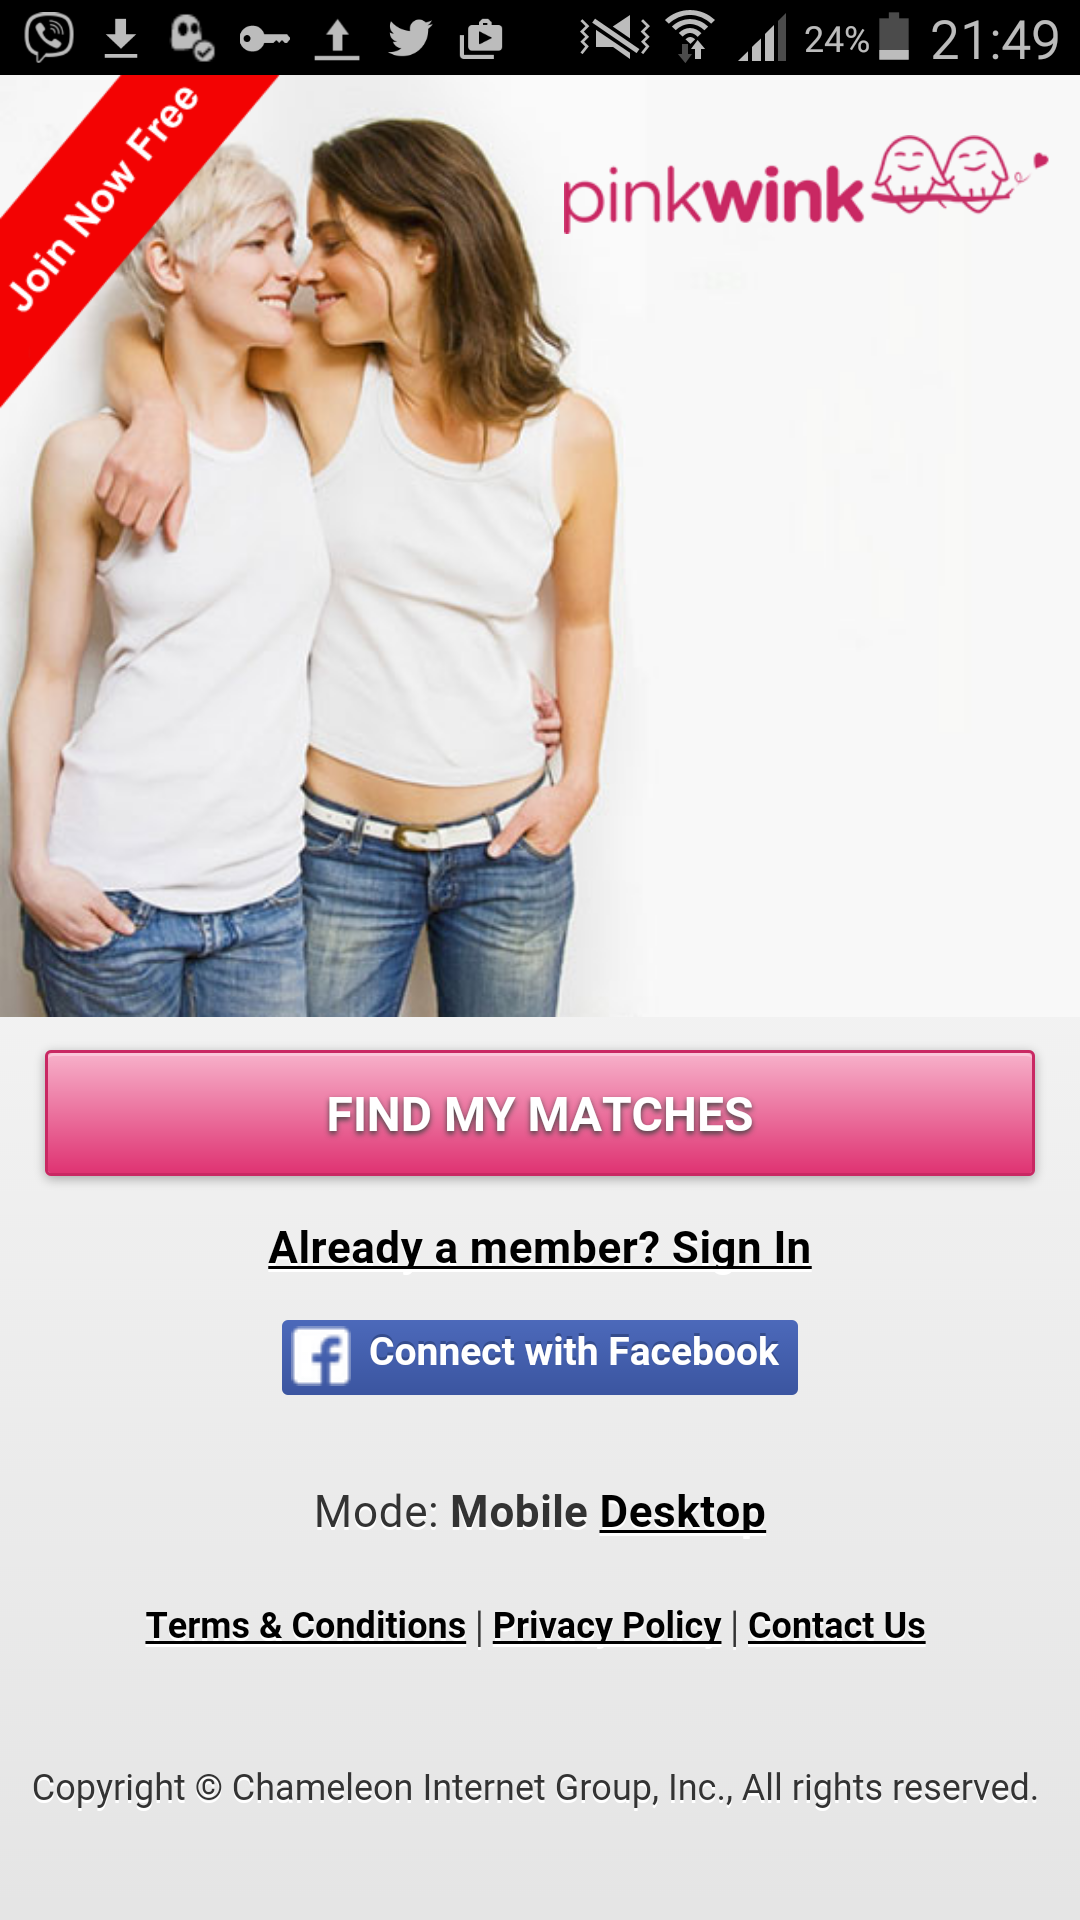 teutopolis lesbian dating site Looking for women seeking women and lasting love connect with lesbian  singles dating and looking for lasting love on our site find out more here.